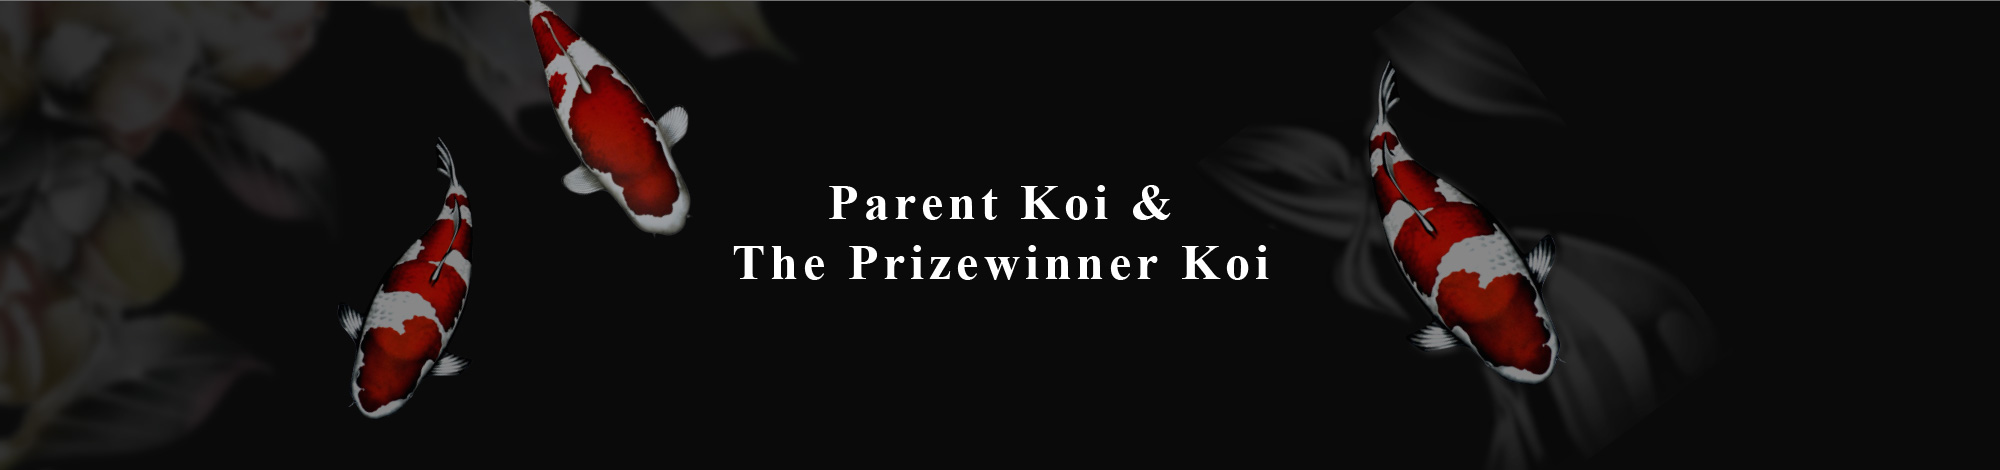 Parent Koi &The Prizewinner Koi